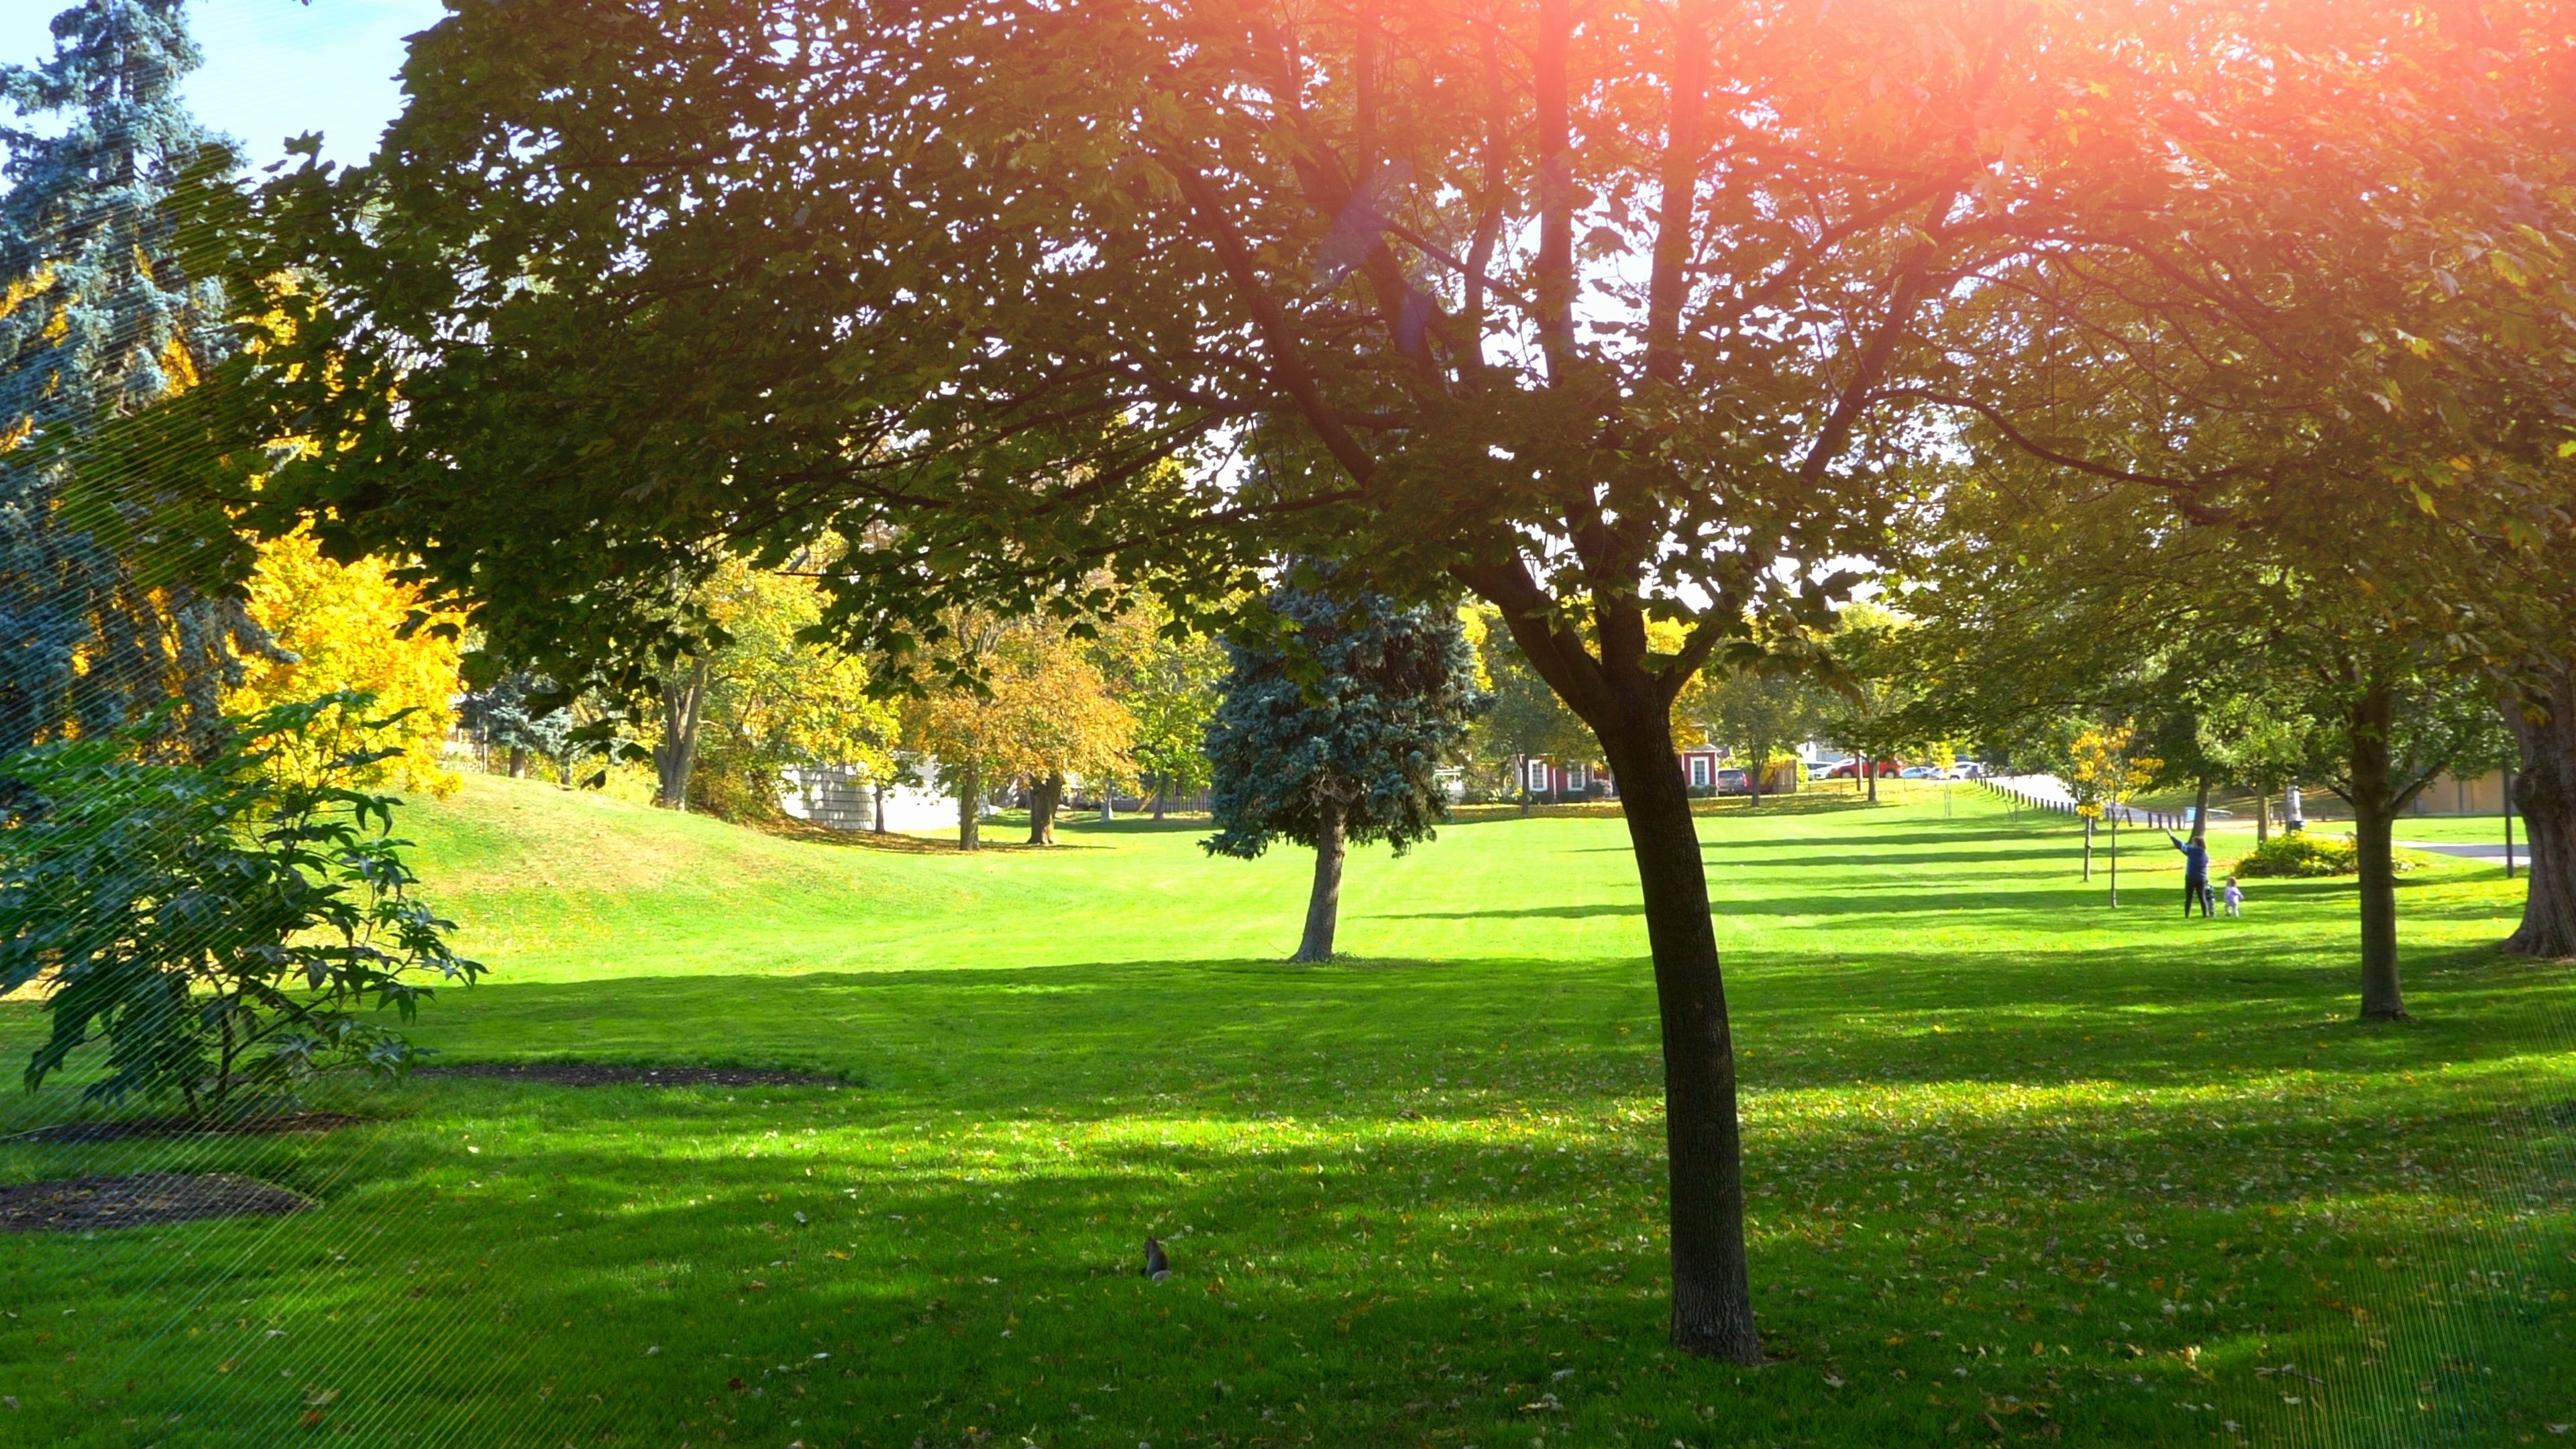 Green Park Grass Beautiful City Lawn Nature Background Outdoor Garden Landscape Sto Country Garden Landscaping Outdoor Gardens Landscaping Grasses Landscaping